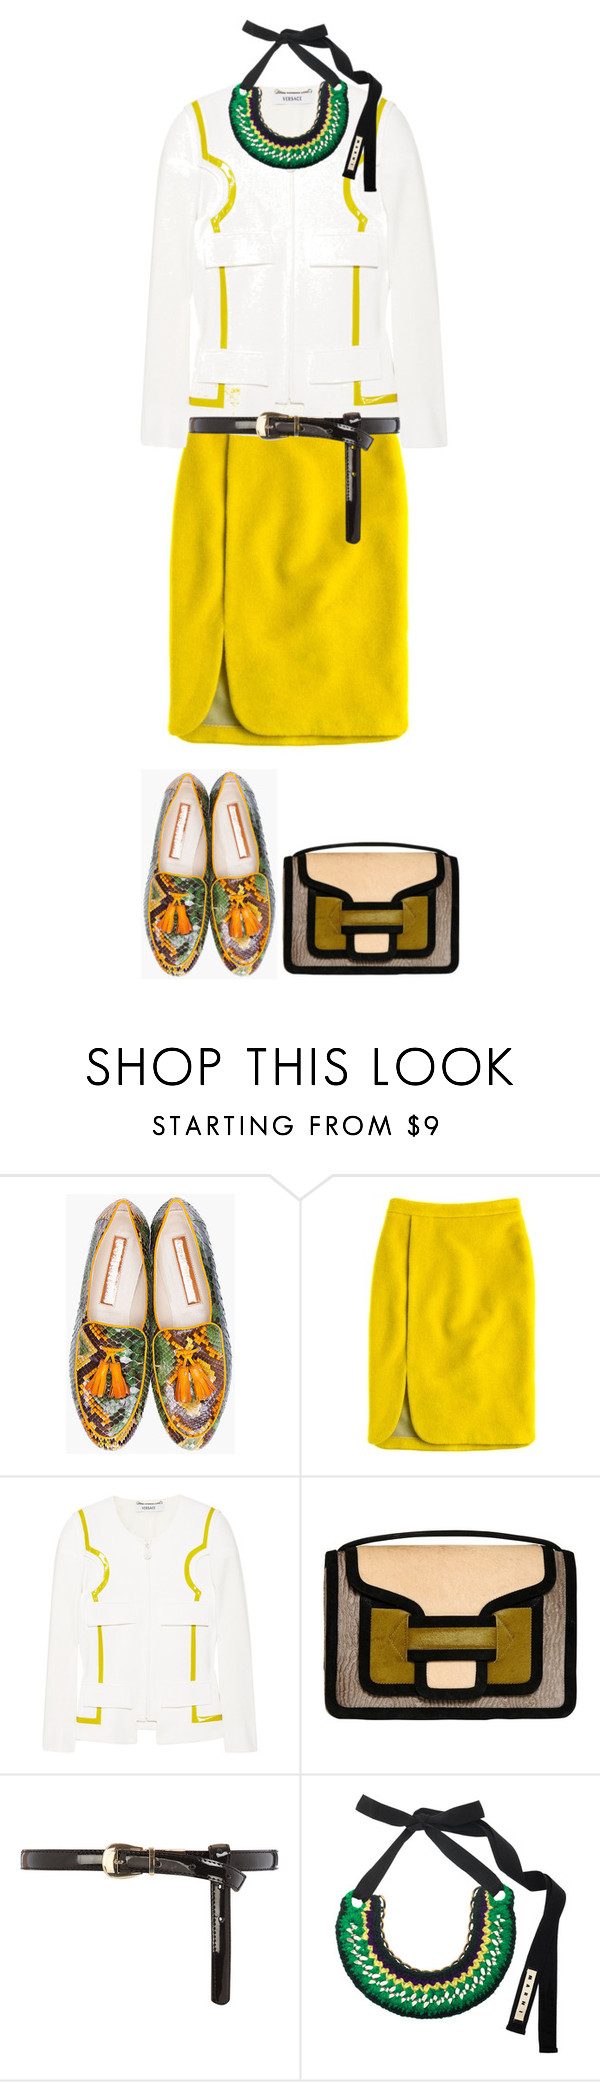 """Bez tytułu #477"" by agniecha ❤ liked on Polyvore featuring Rupert Sanderson, J.Crew, Versace, Pierre Hardy, Dorothy Perkins and Marni"